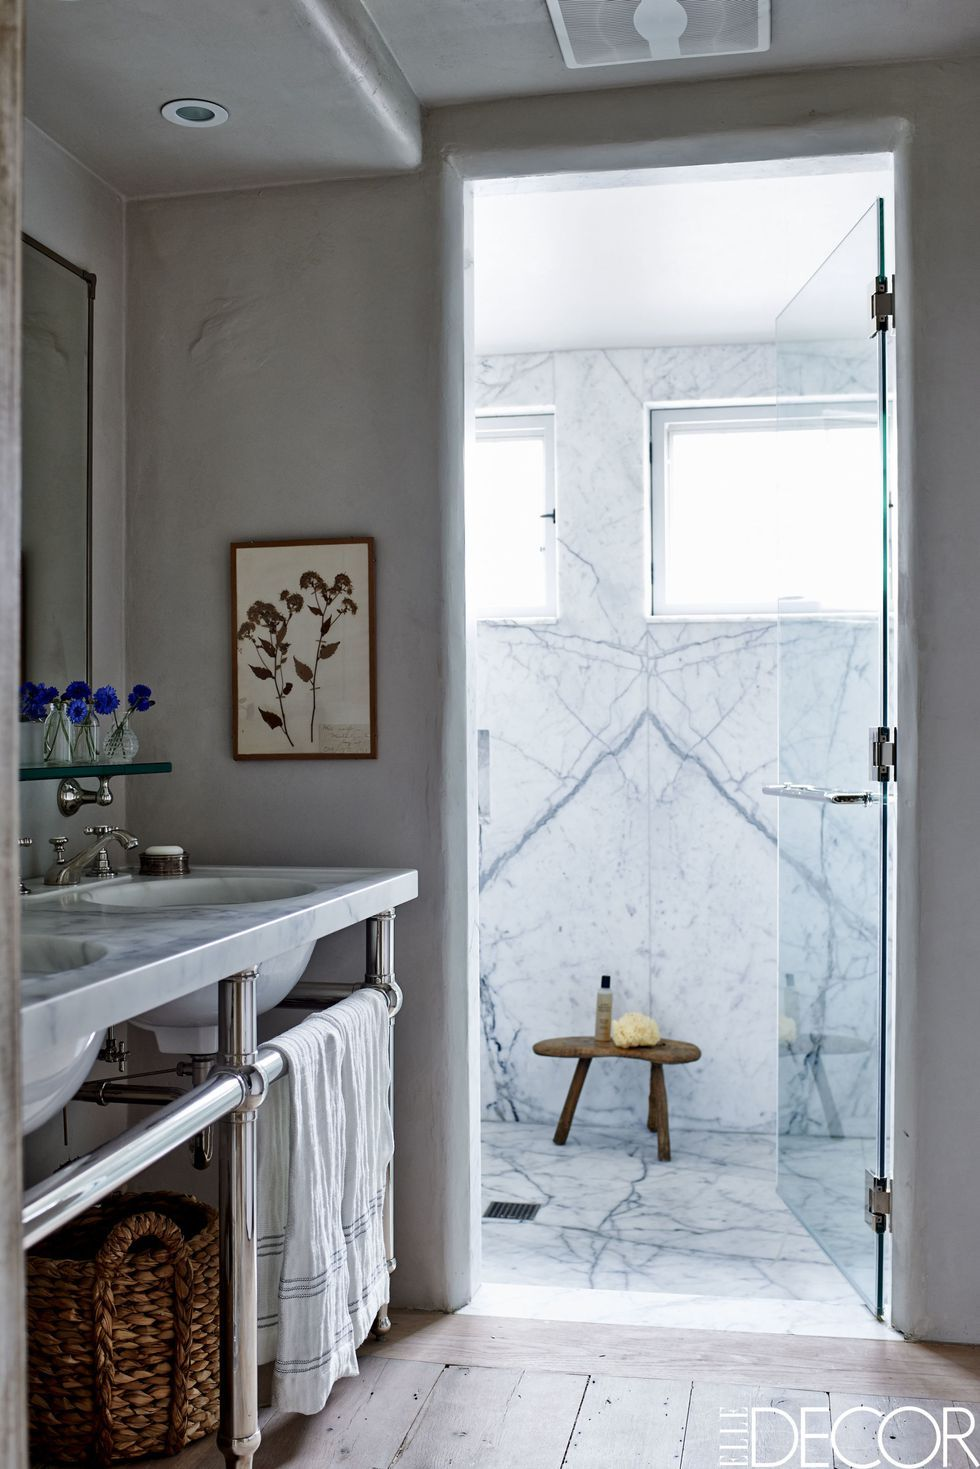 Beautiful Bathroom Design And Sophisticated Decor With Marble Walk In Shower Console Sinks Refined Aesthetic Colour Sense